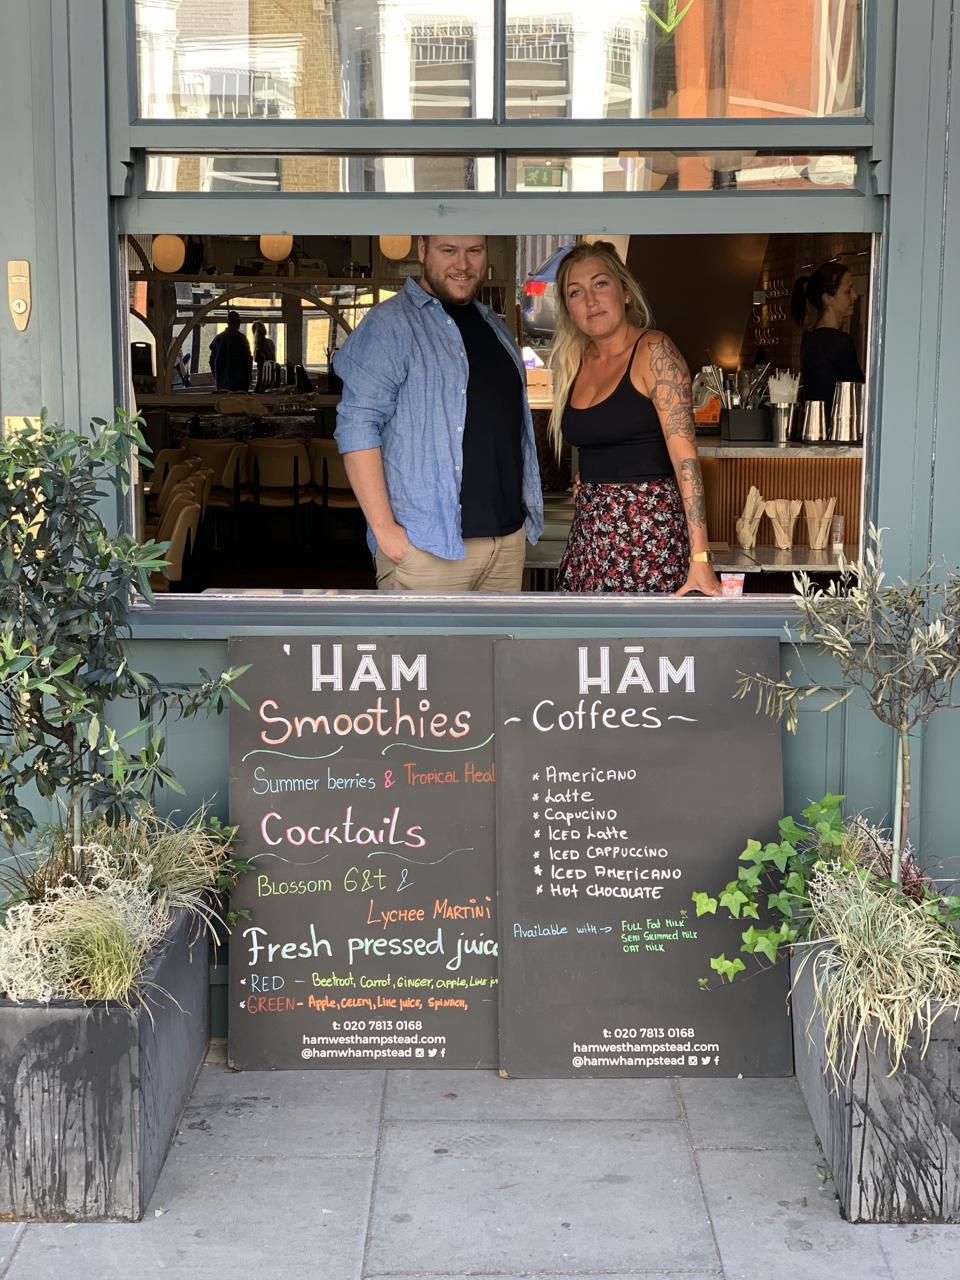 Ham takeout in West Hampstead